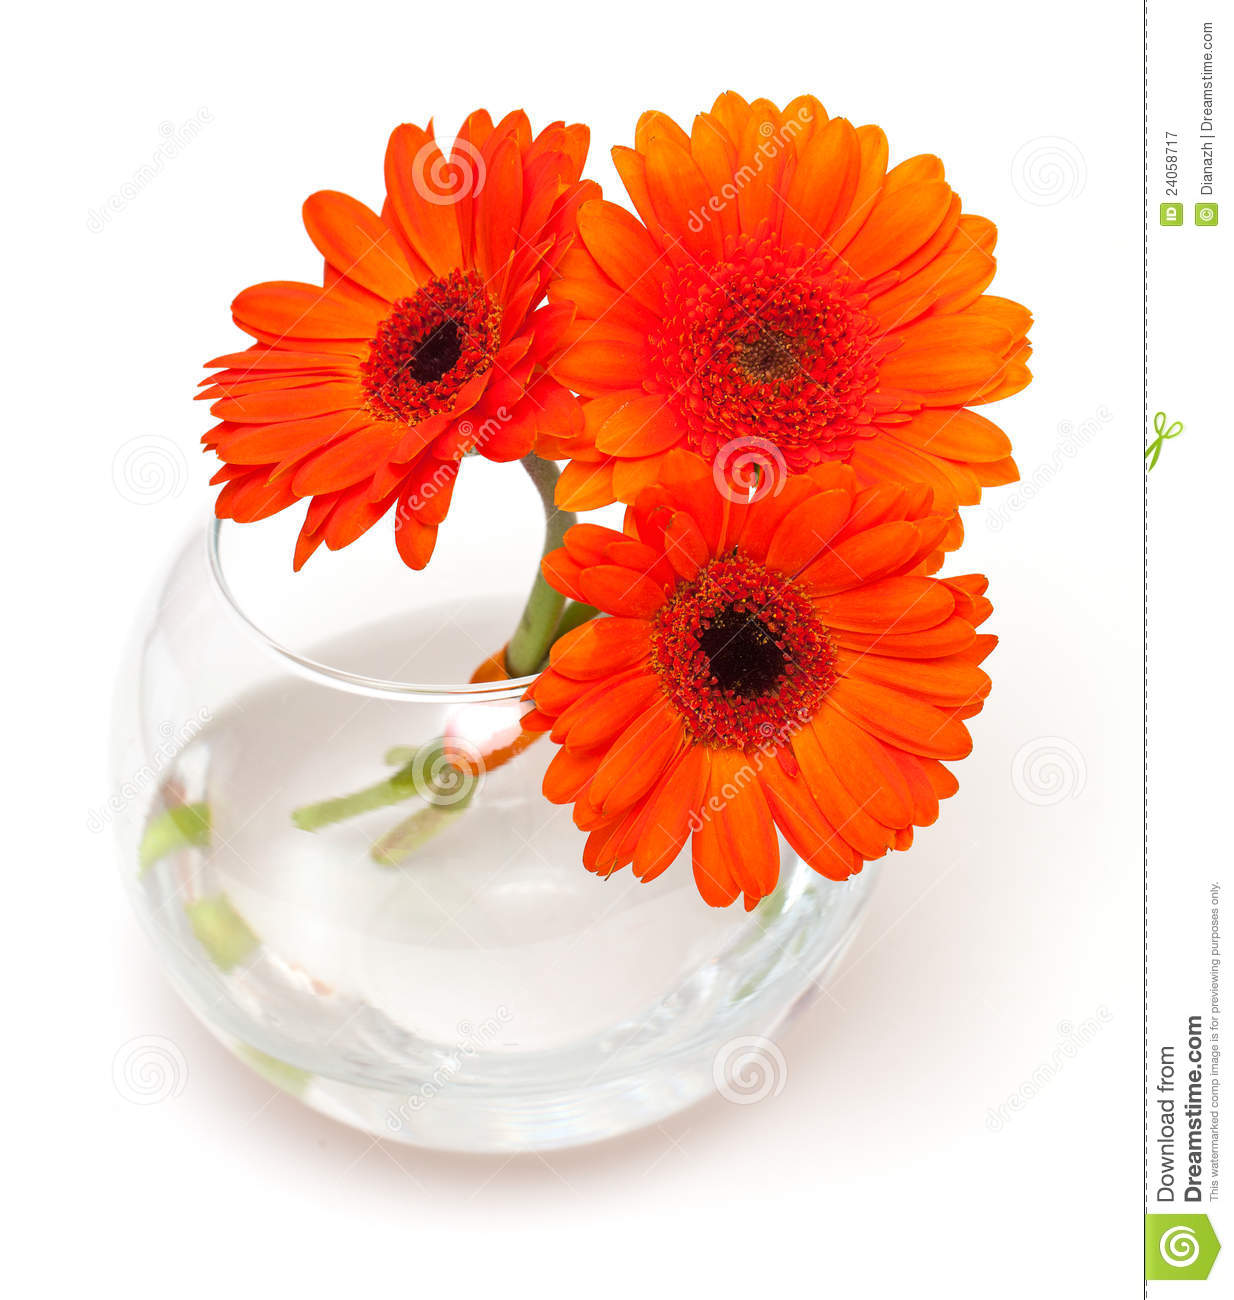 Orange Daisy Flowers In A Glass Vase Stock Image Image Of Gerbera